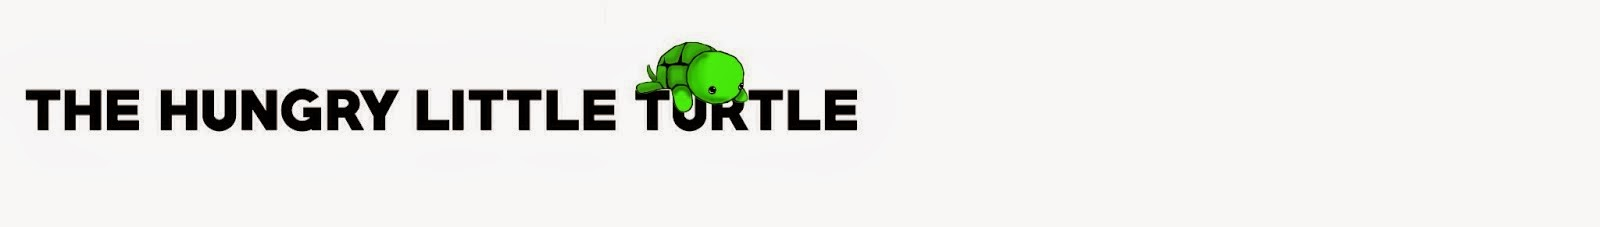 The Hungry Little Turtle